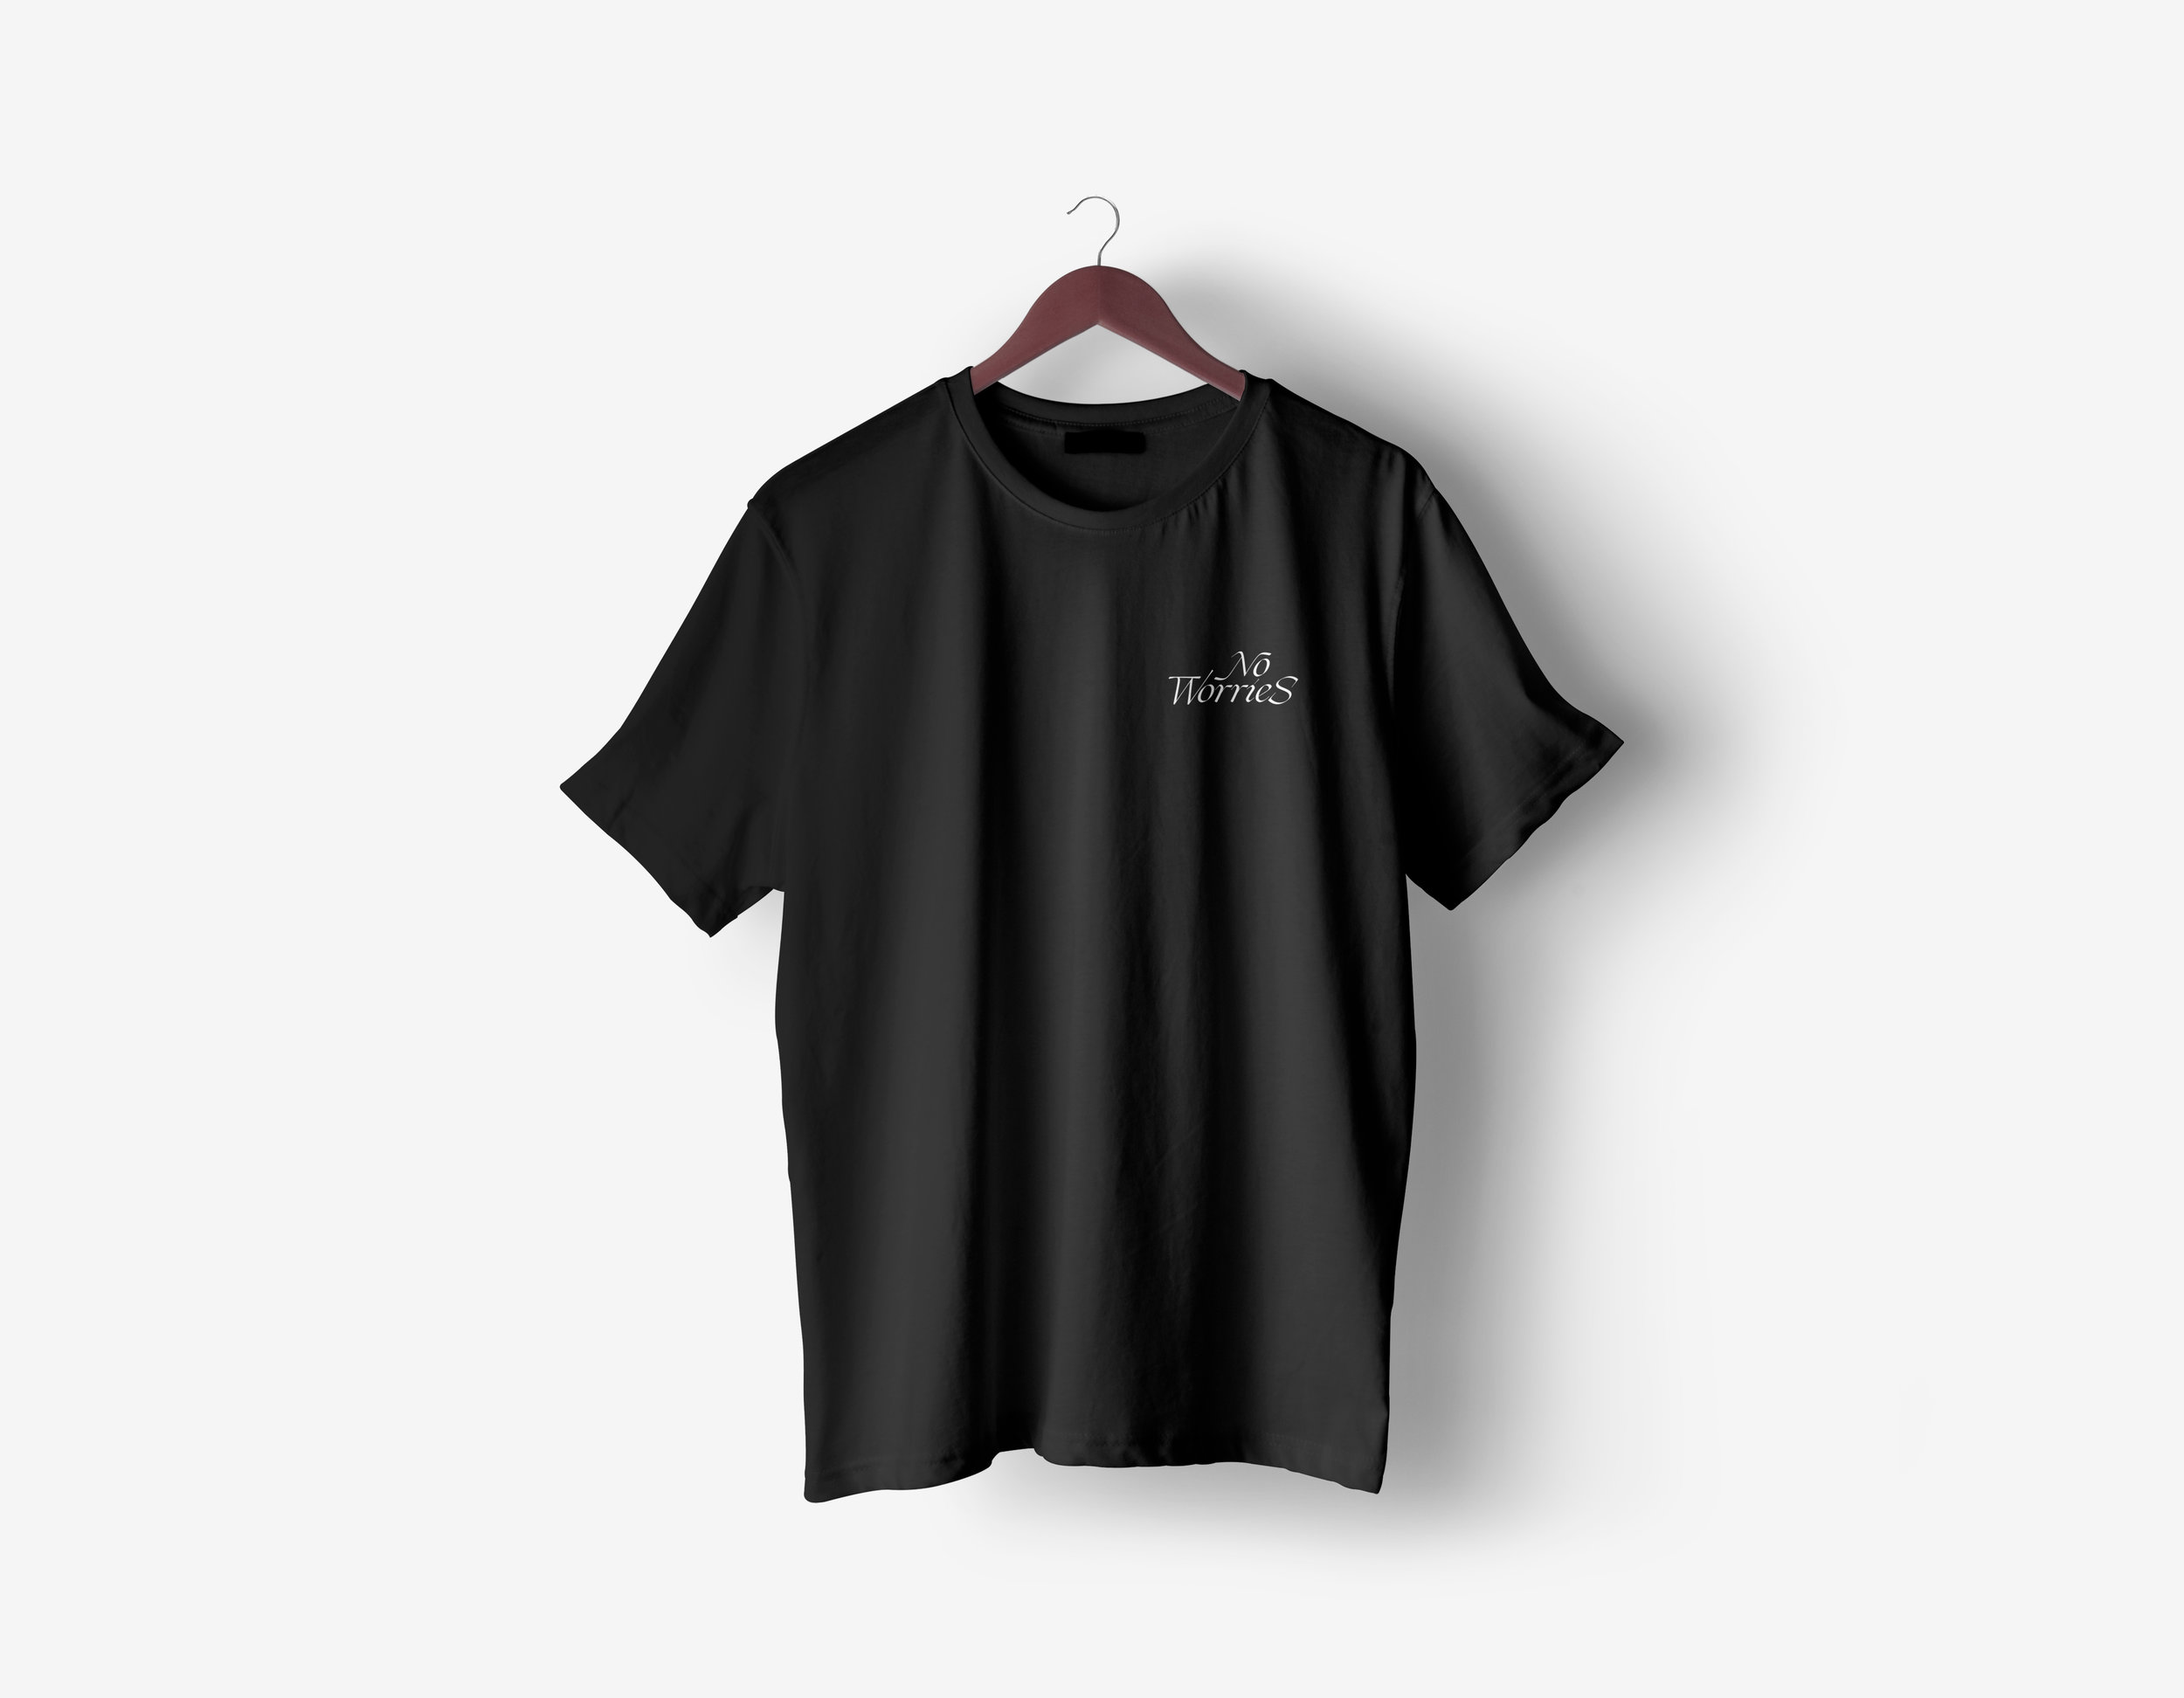 NW_shirt_front.jpg